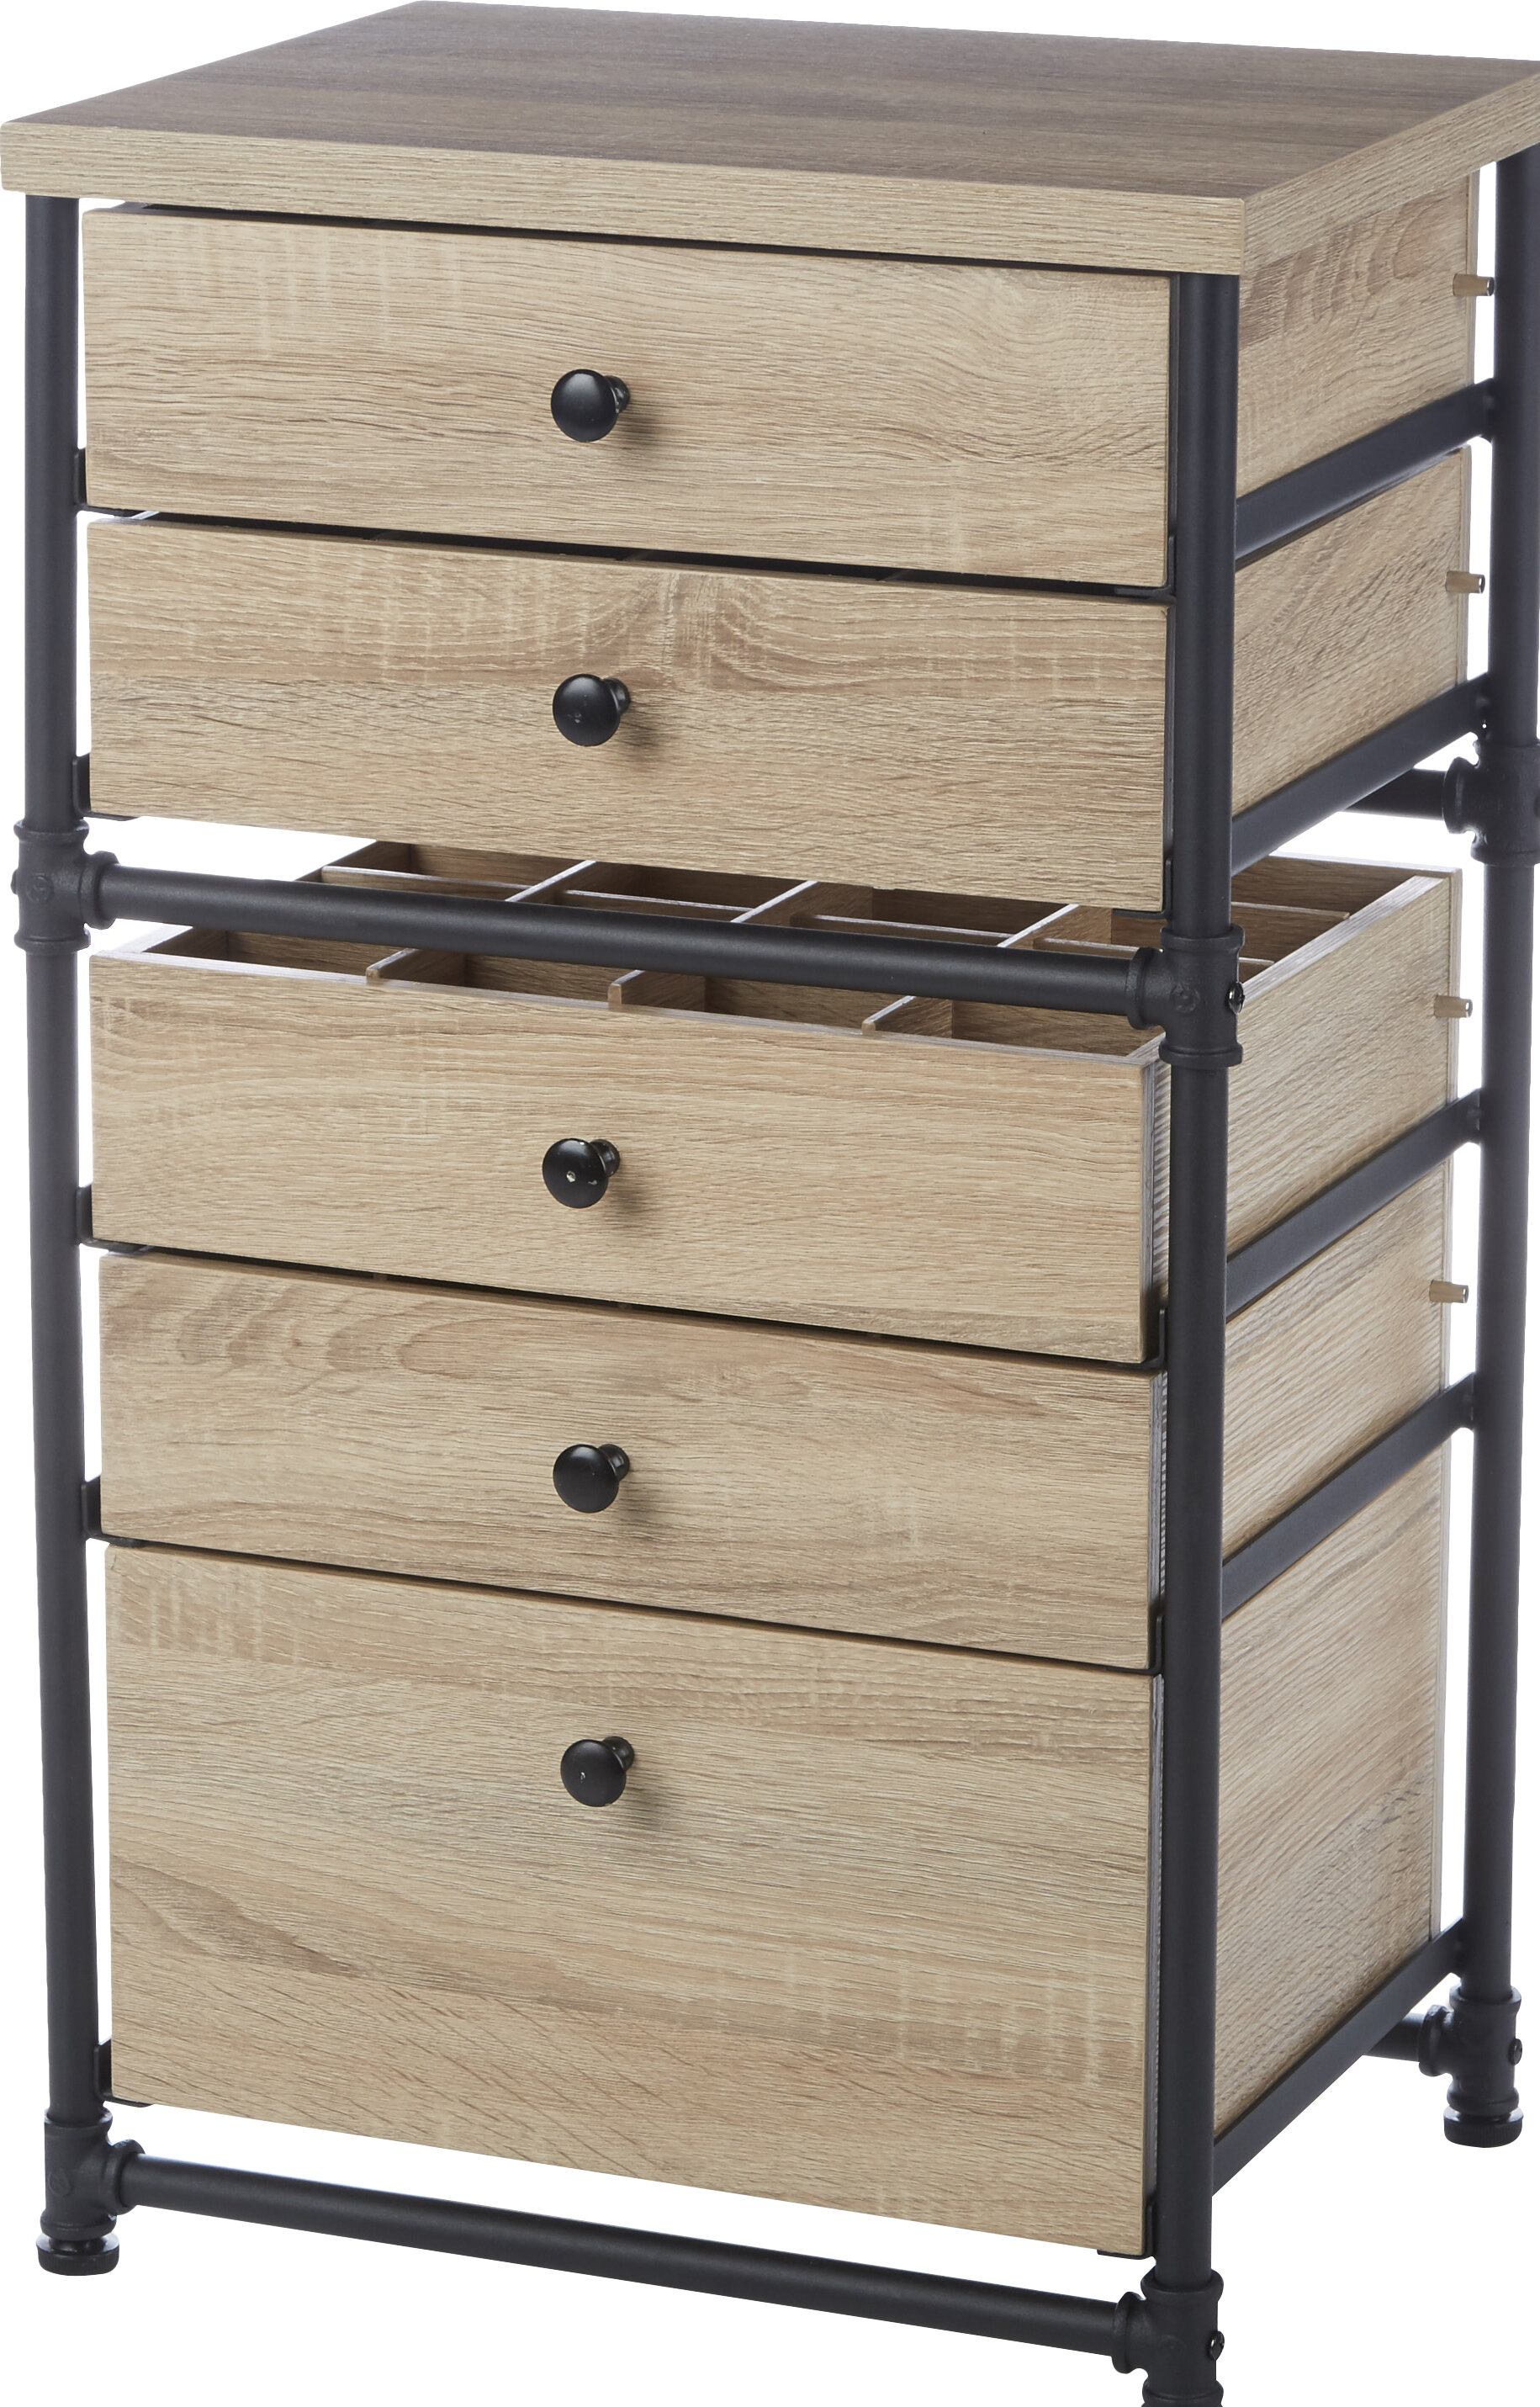 storage chest with drawers. Storage Chest With Drawers O